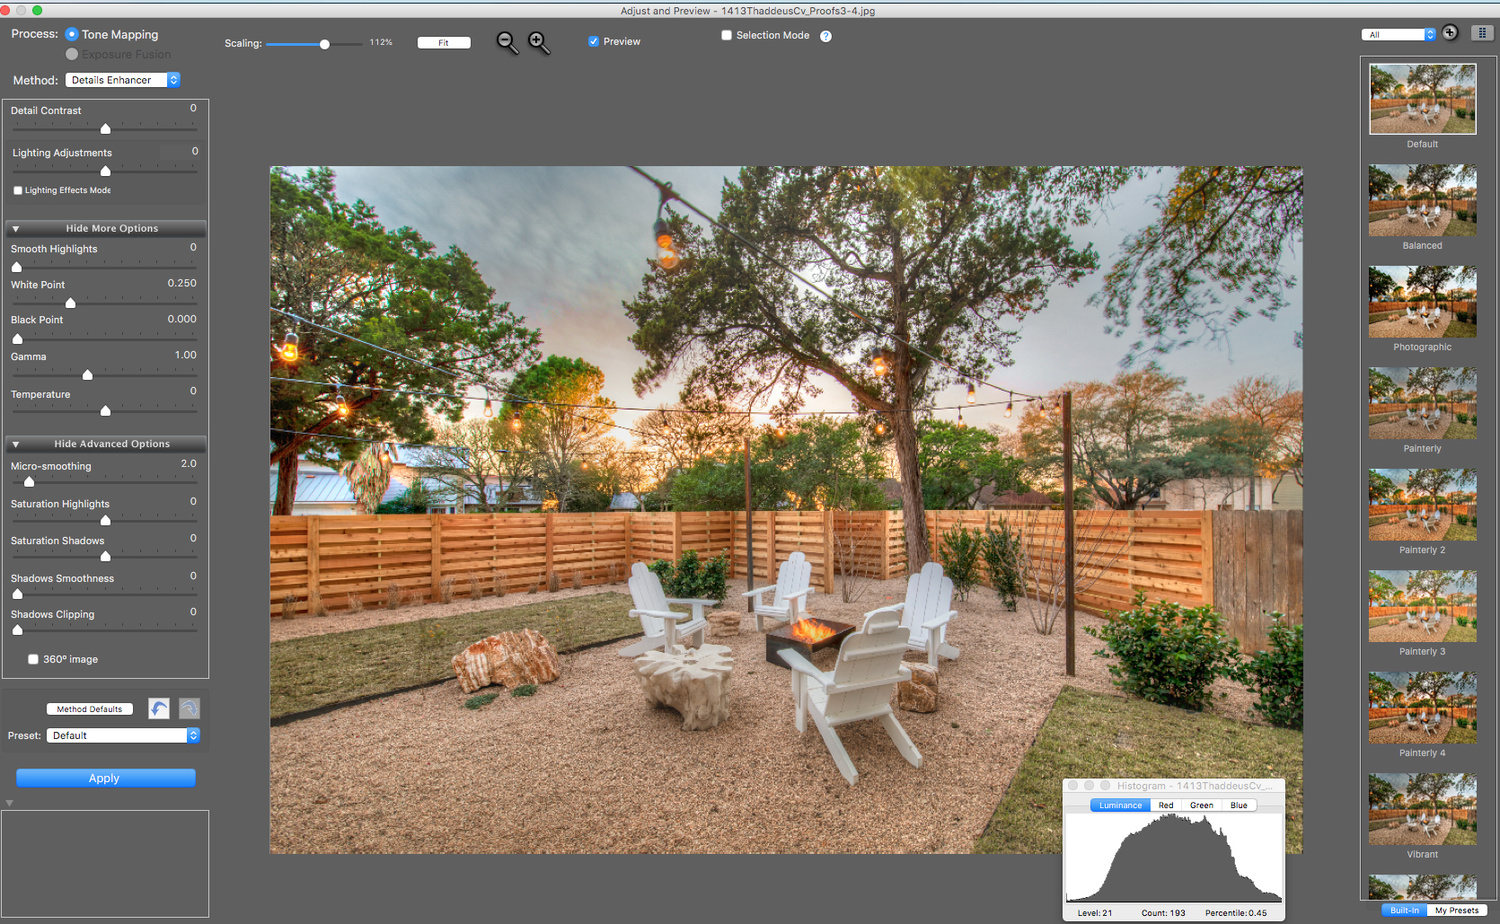 a screen shot of Photomatix tone mapping